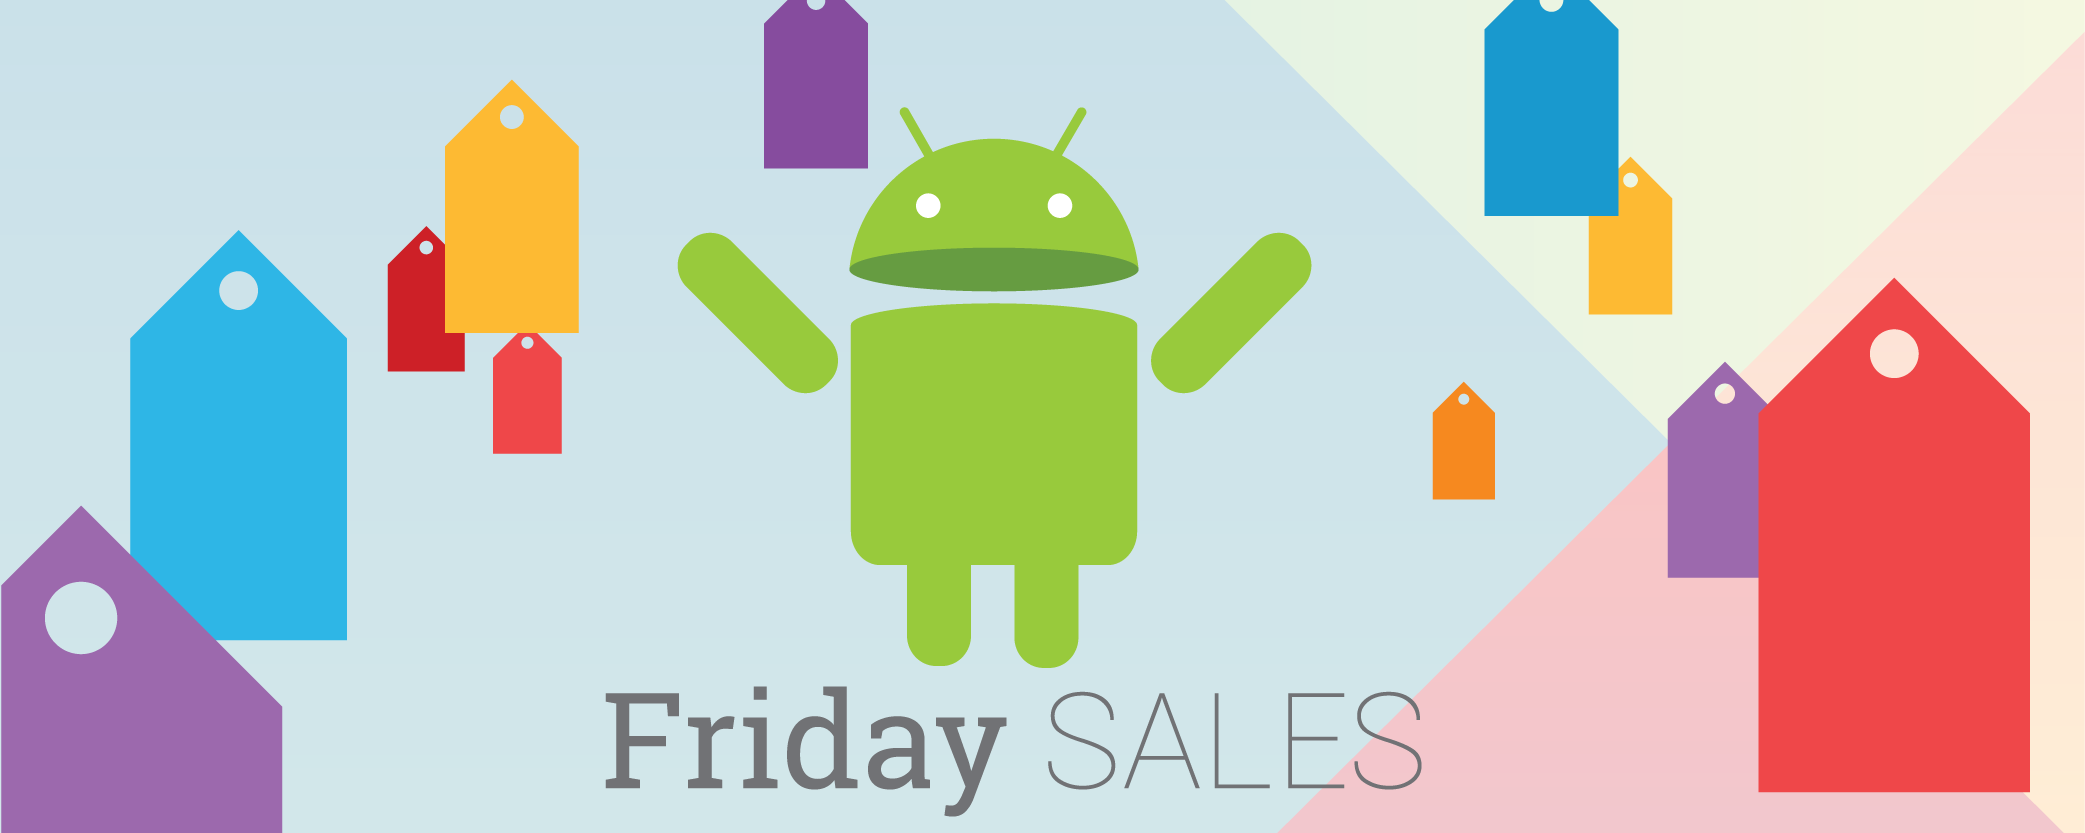 35 temporarily free and 68 on-sale apps and games to start the weekend